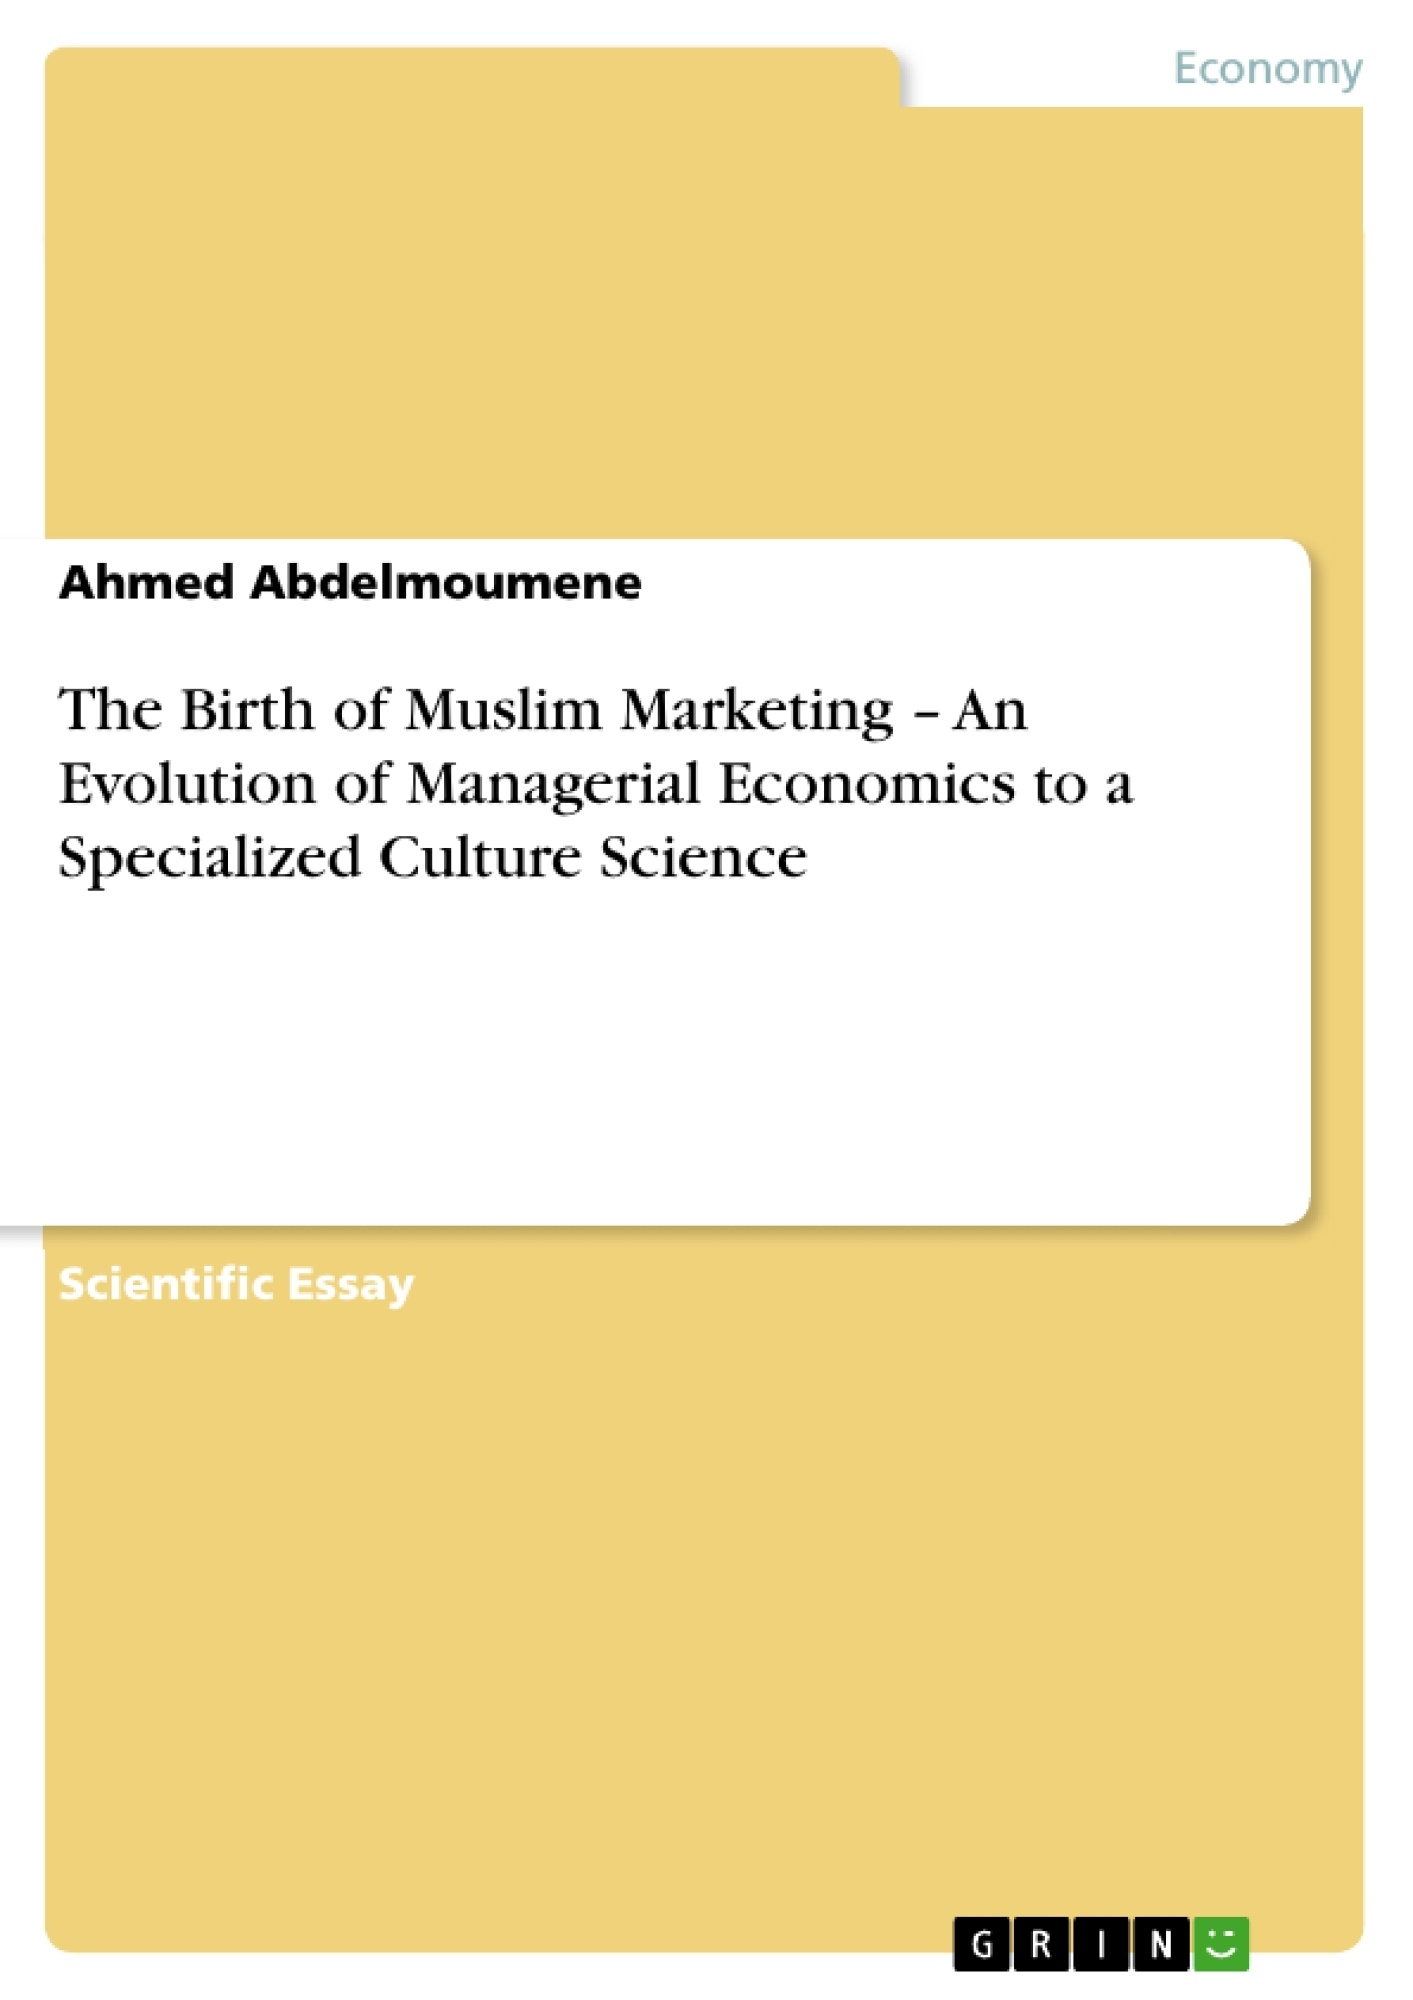 Title: The Birth of Muslim Marketing – An Evolution of Managerial Economics to a Specialized Culture Science